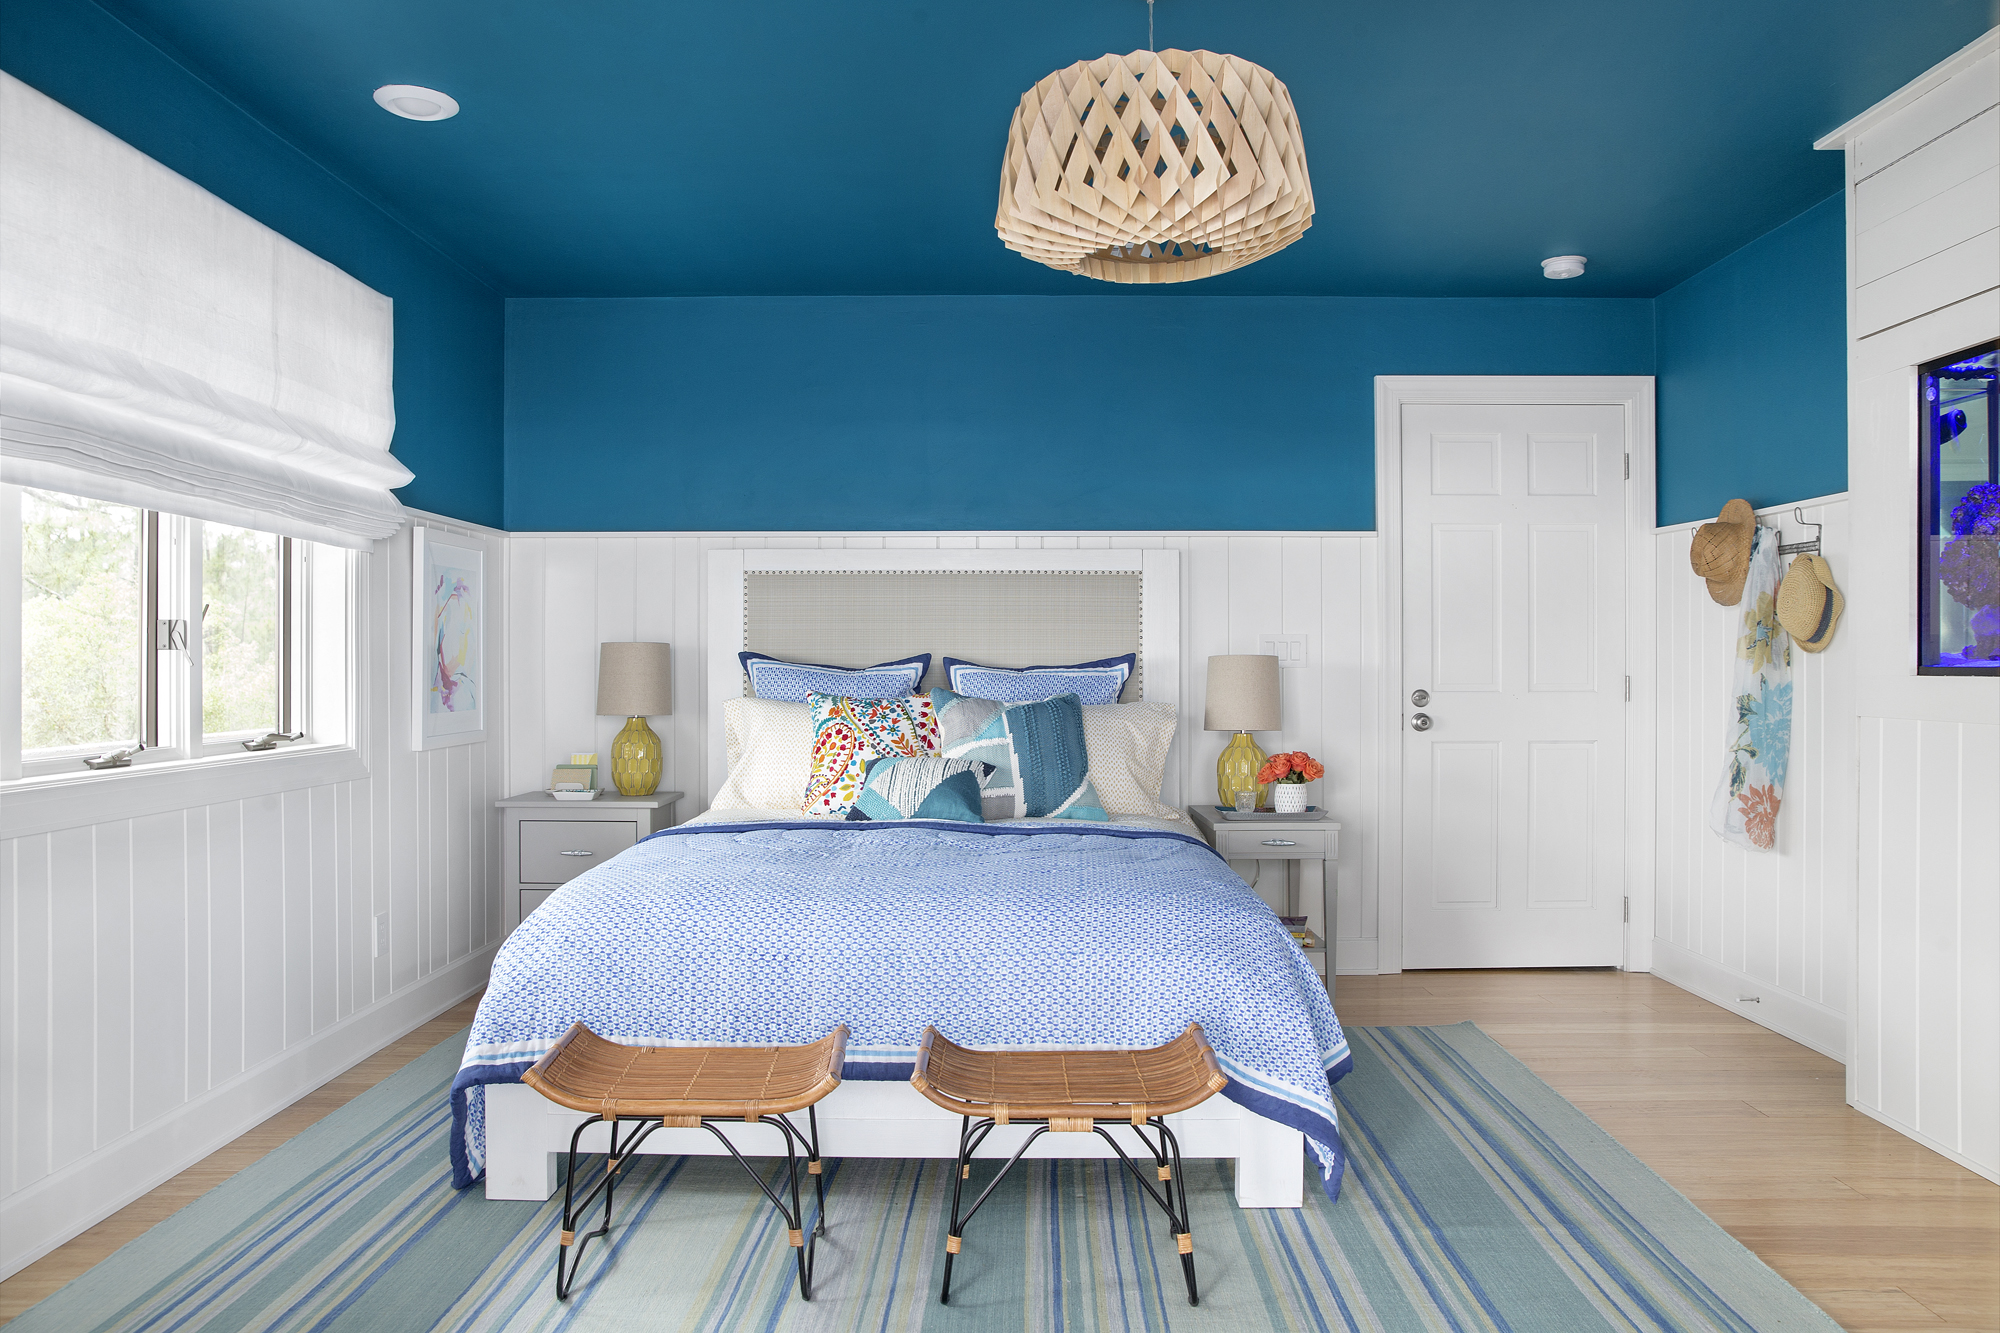 Azure paint, white beadboard paneling and taupe accents give the guest bedroom a crisp, beachy freshness, while modern rattan-style stools offer guests extra convenience.